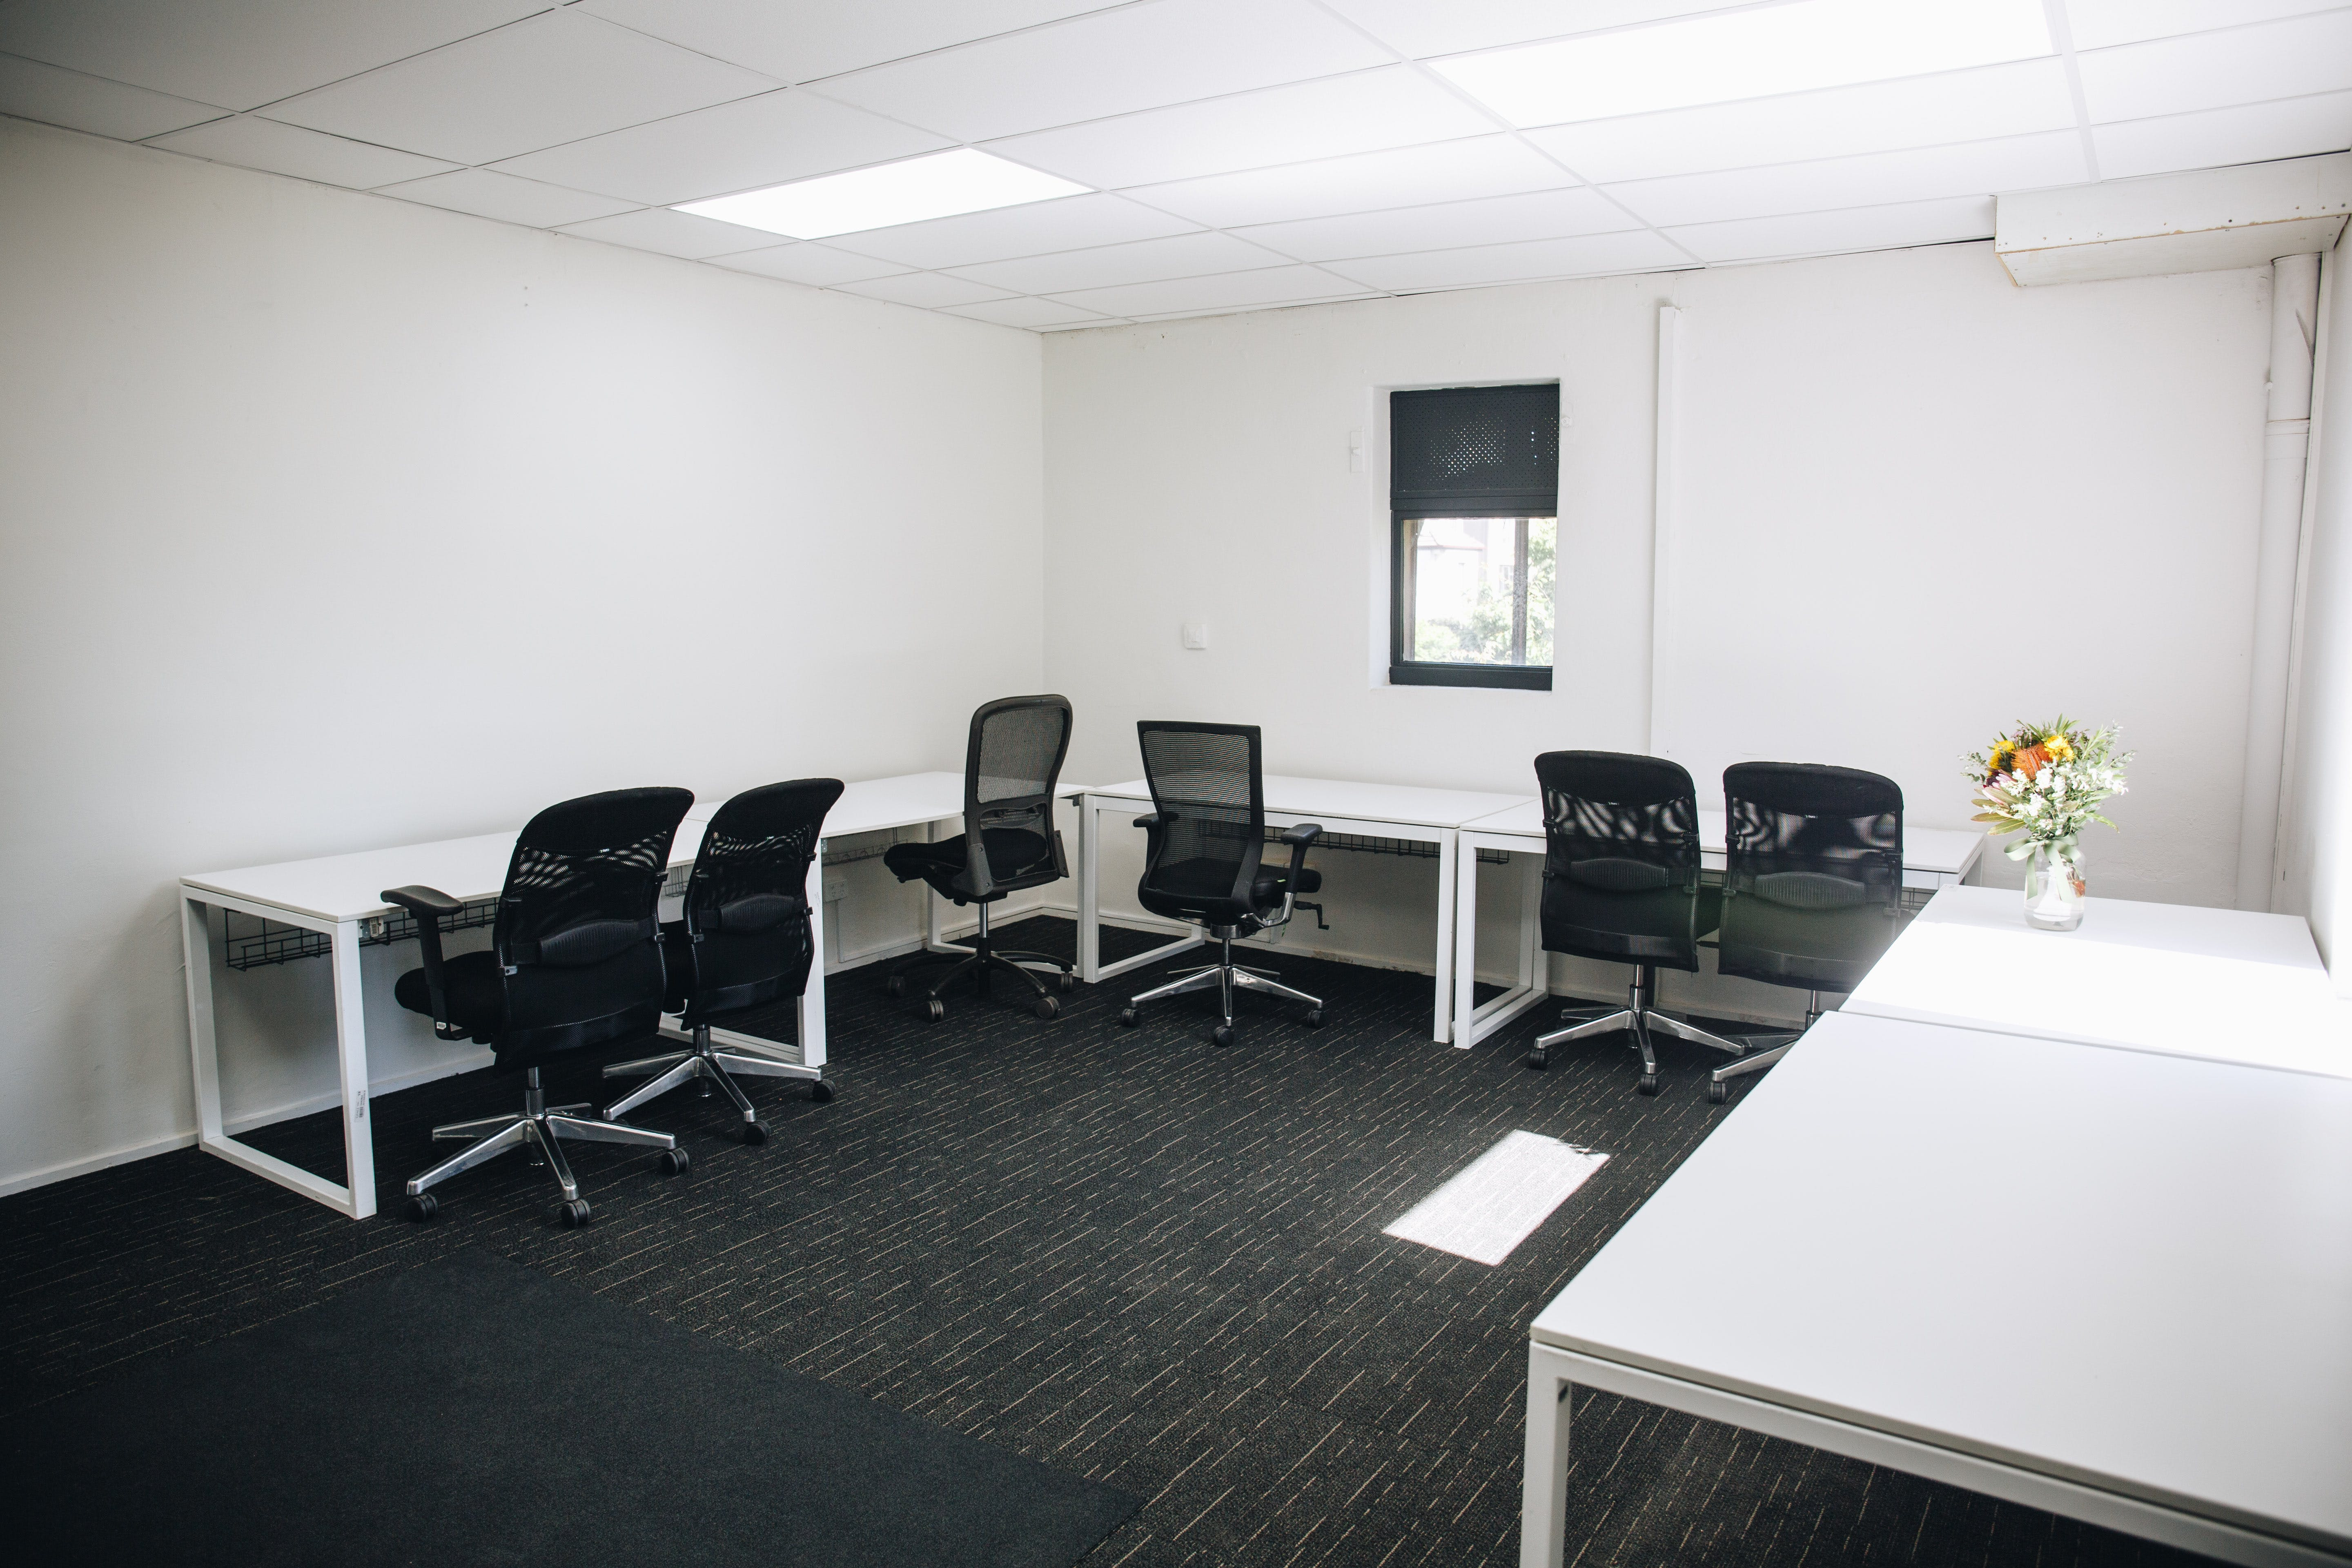 Office 3, private office at Engine House, image 1